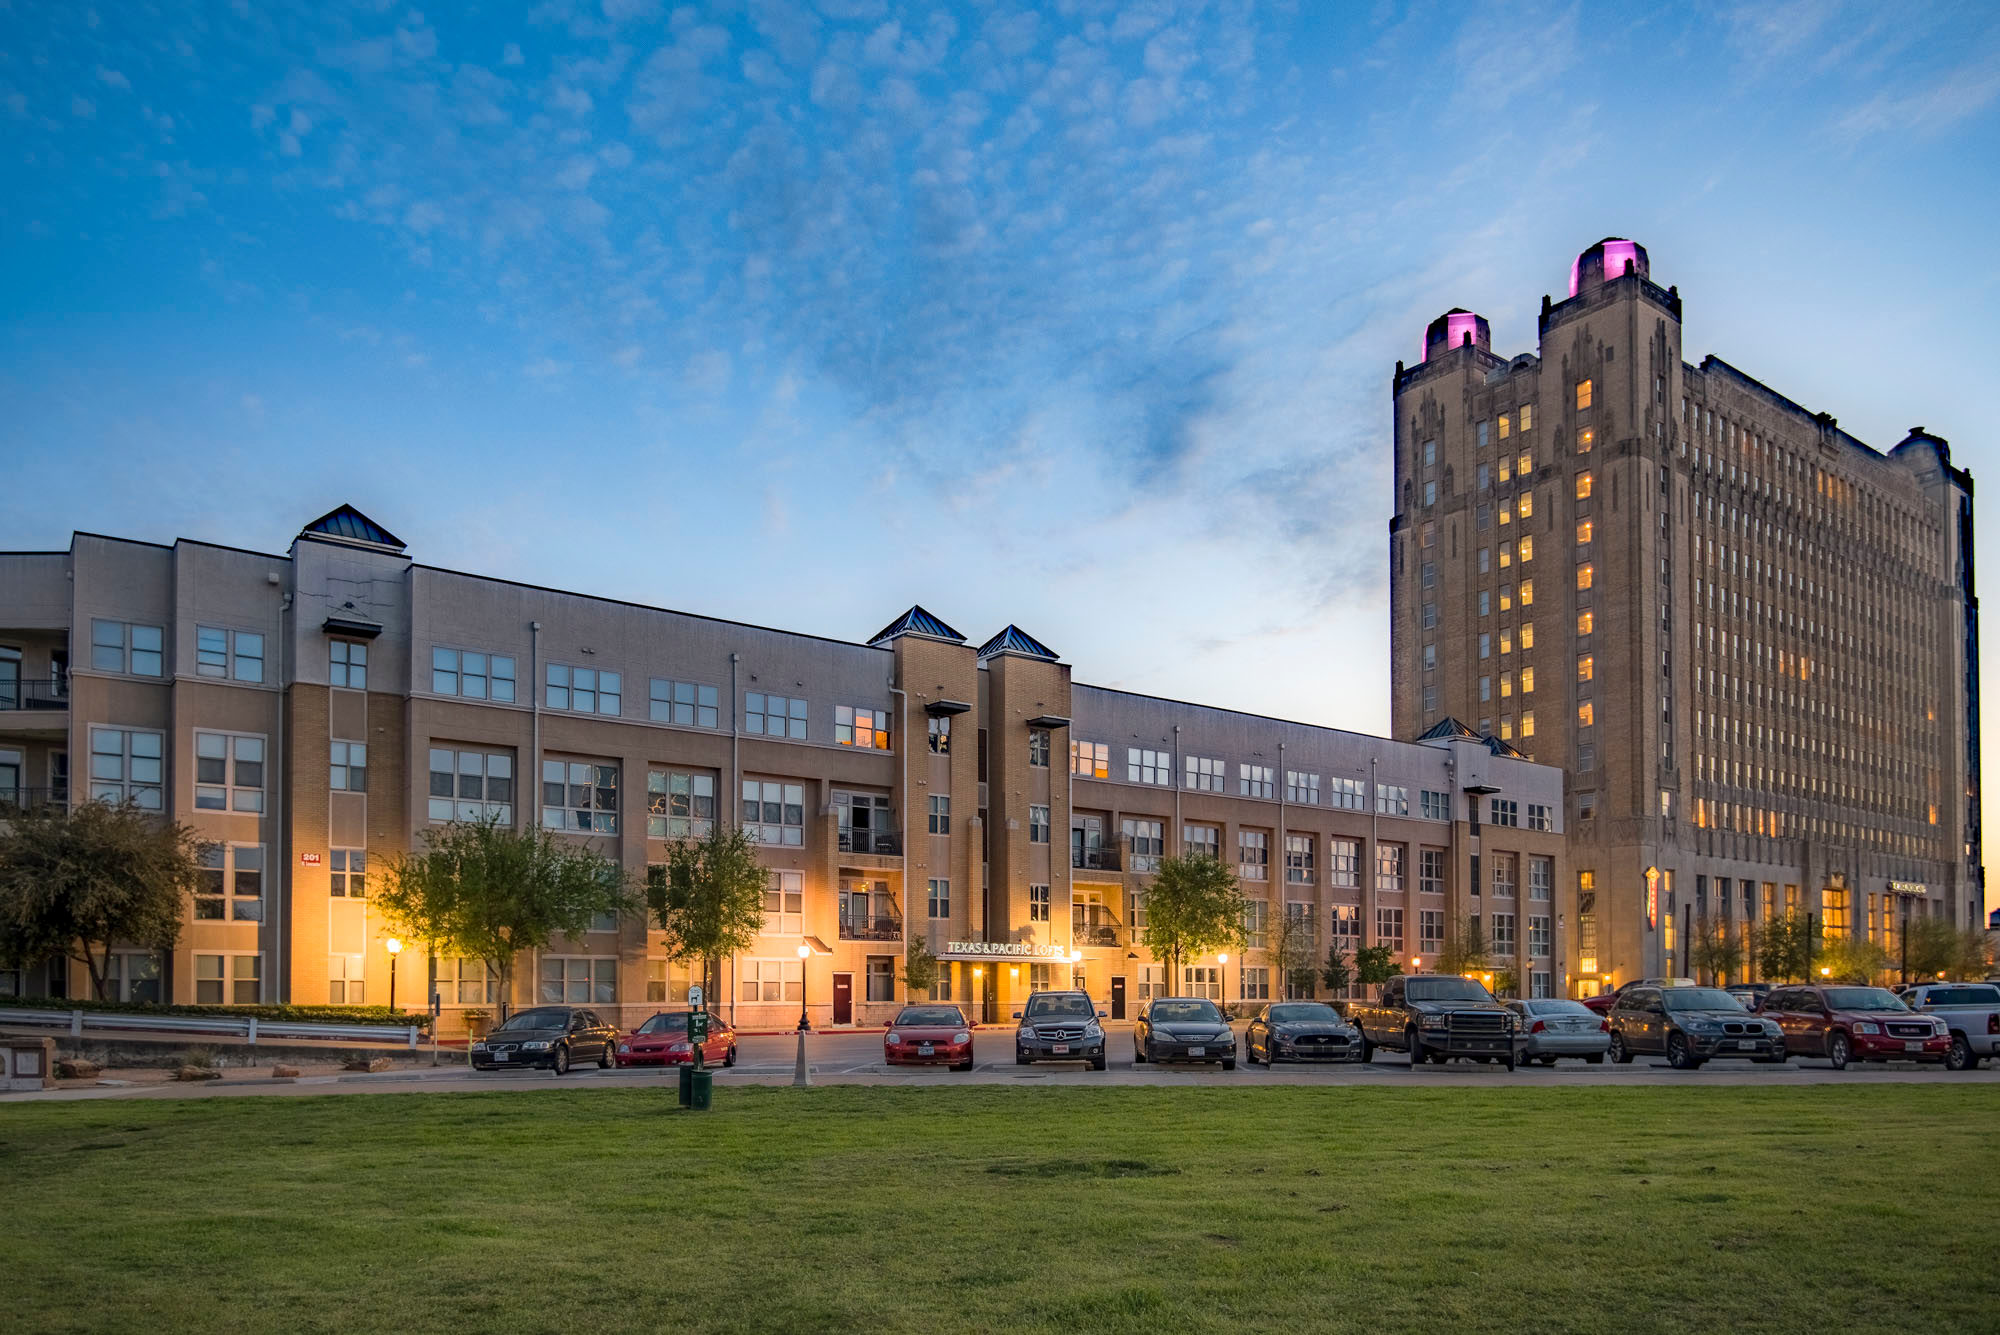 T&P Lofts at Dusk